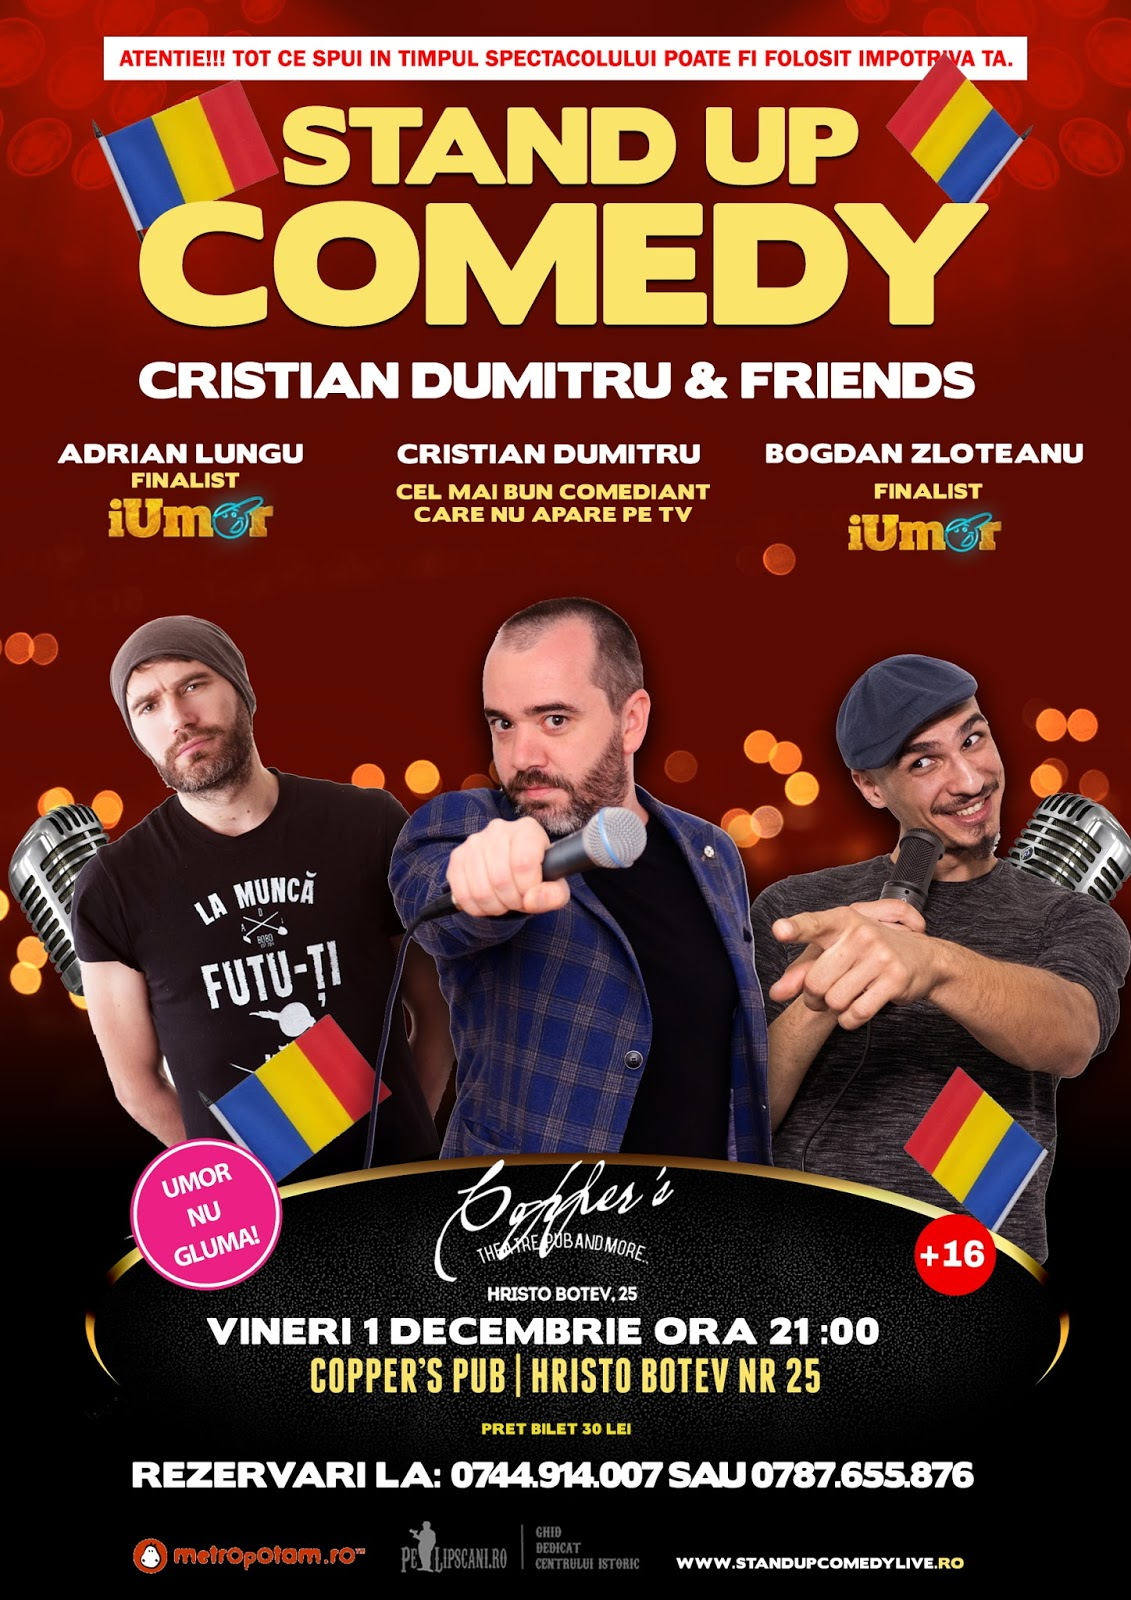 Stand-Up Comedy Vineri 1 Decembrie in Bucuresti